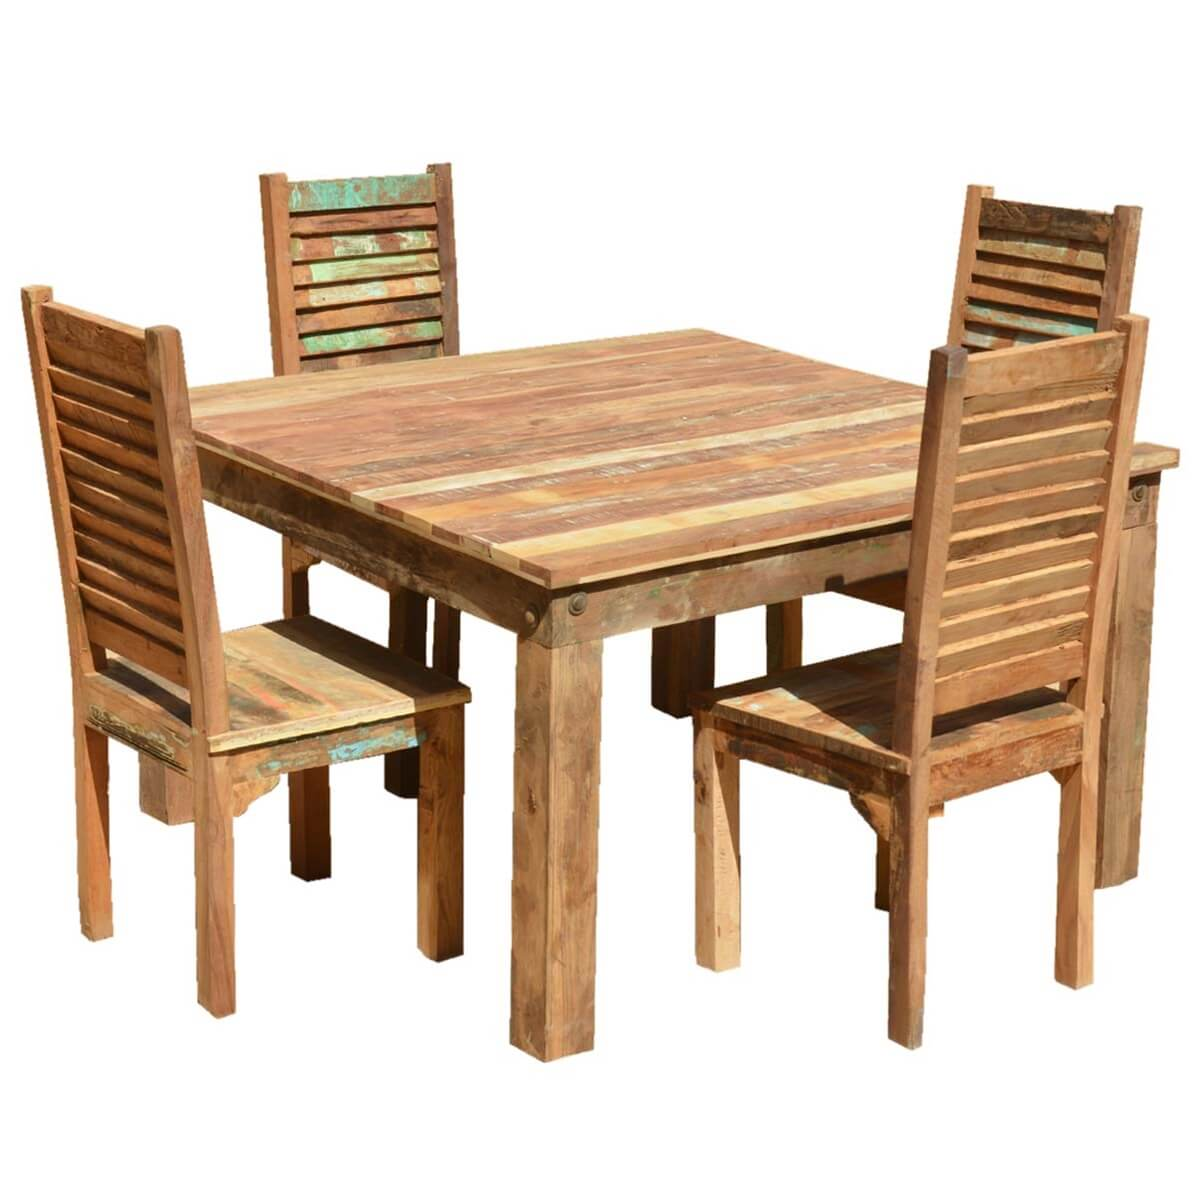 Ohio Reclaimed Wood Furniture Dining Table U0026 Shutter Back Chairs Set